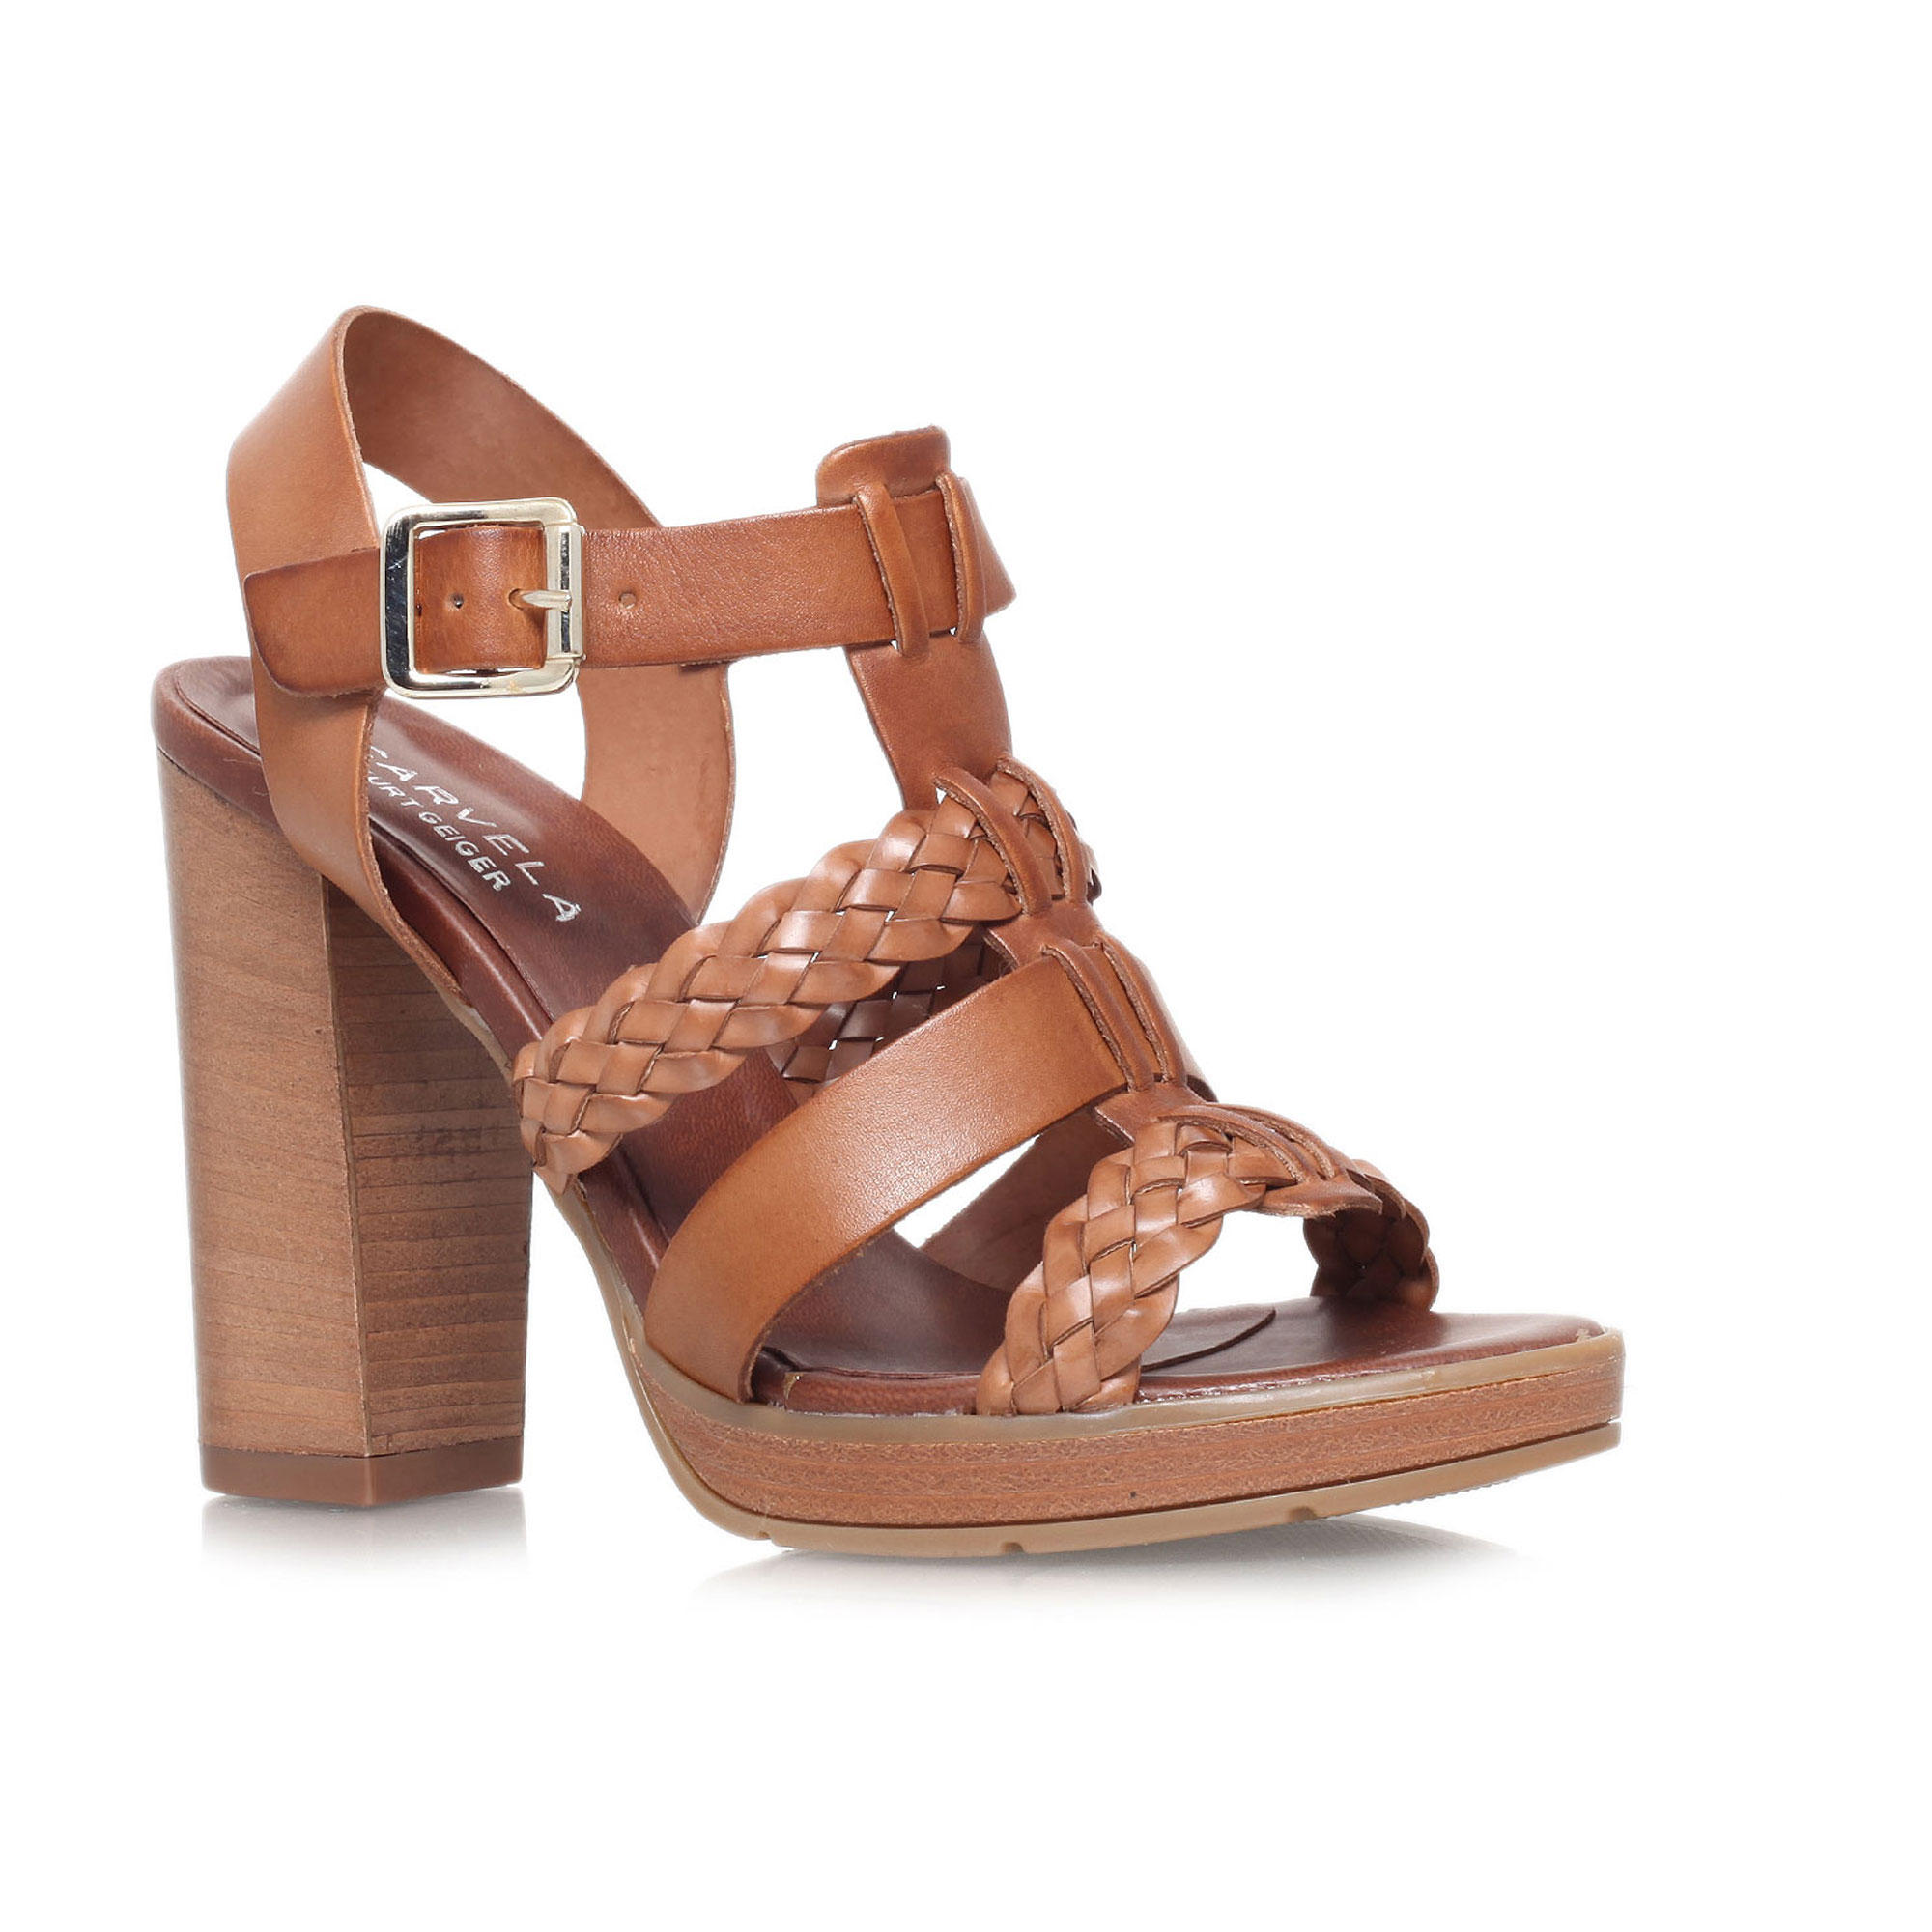 600057382331092800BROWN: Krill Sandal